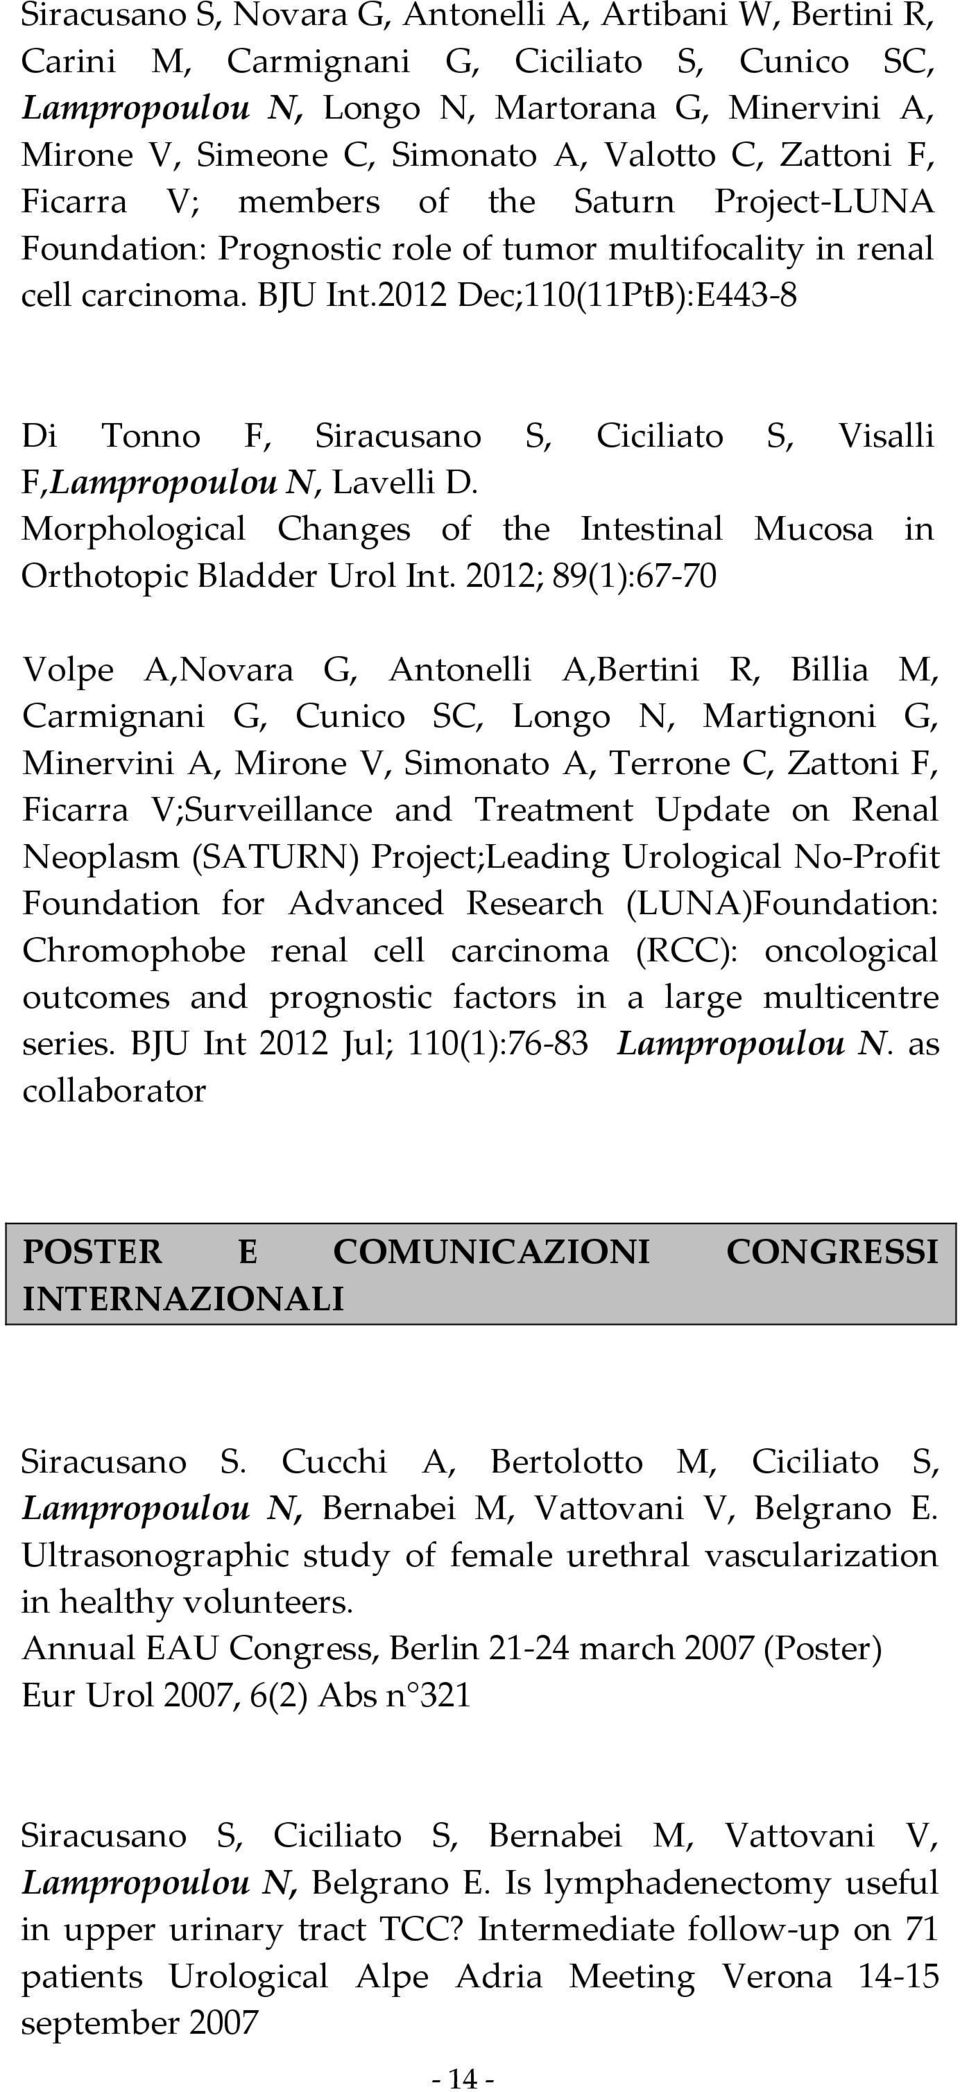 2012 Dec;110(11PtB):E443-8 Di Tonno F, Siracusano S, Ciciliato S, Visalli F,Lampropoulou N, Lavelli D. Morphological Changes of the Intestinal Mucosa in Orthotopic Bladder Urol Int.